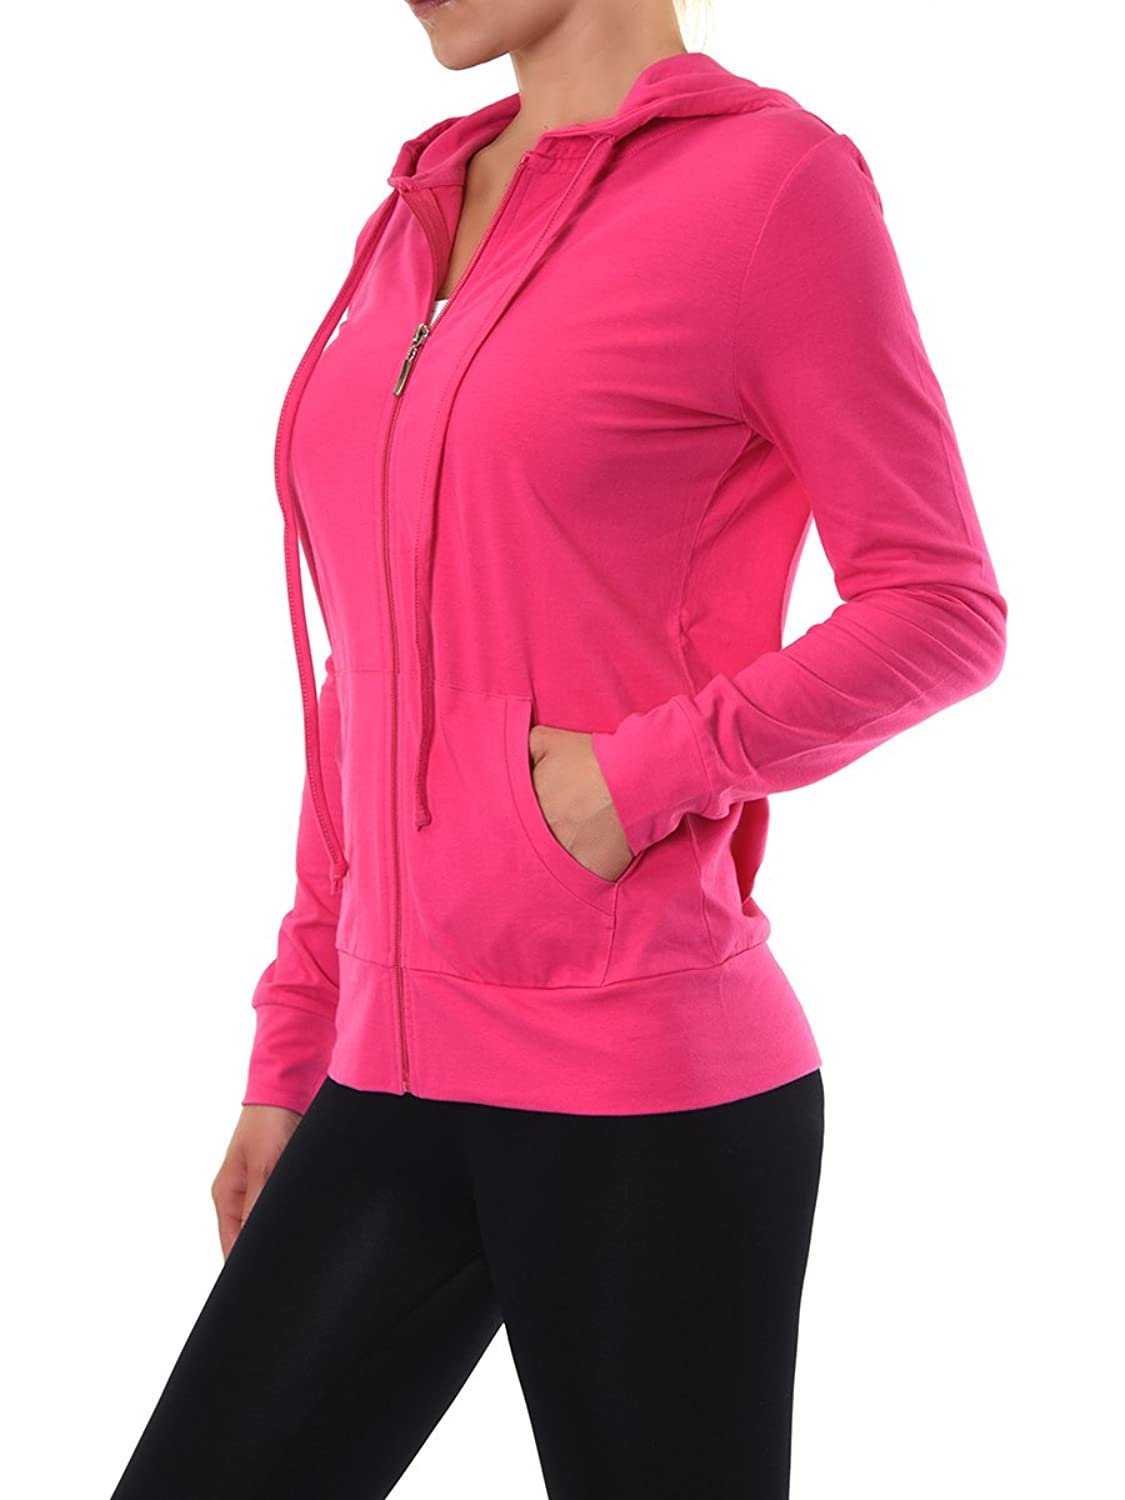 Teejoy Womens Cotton Hoodie Jacket Image 2